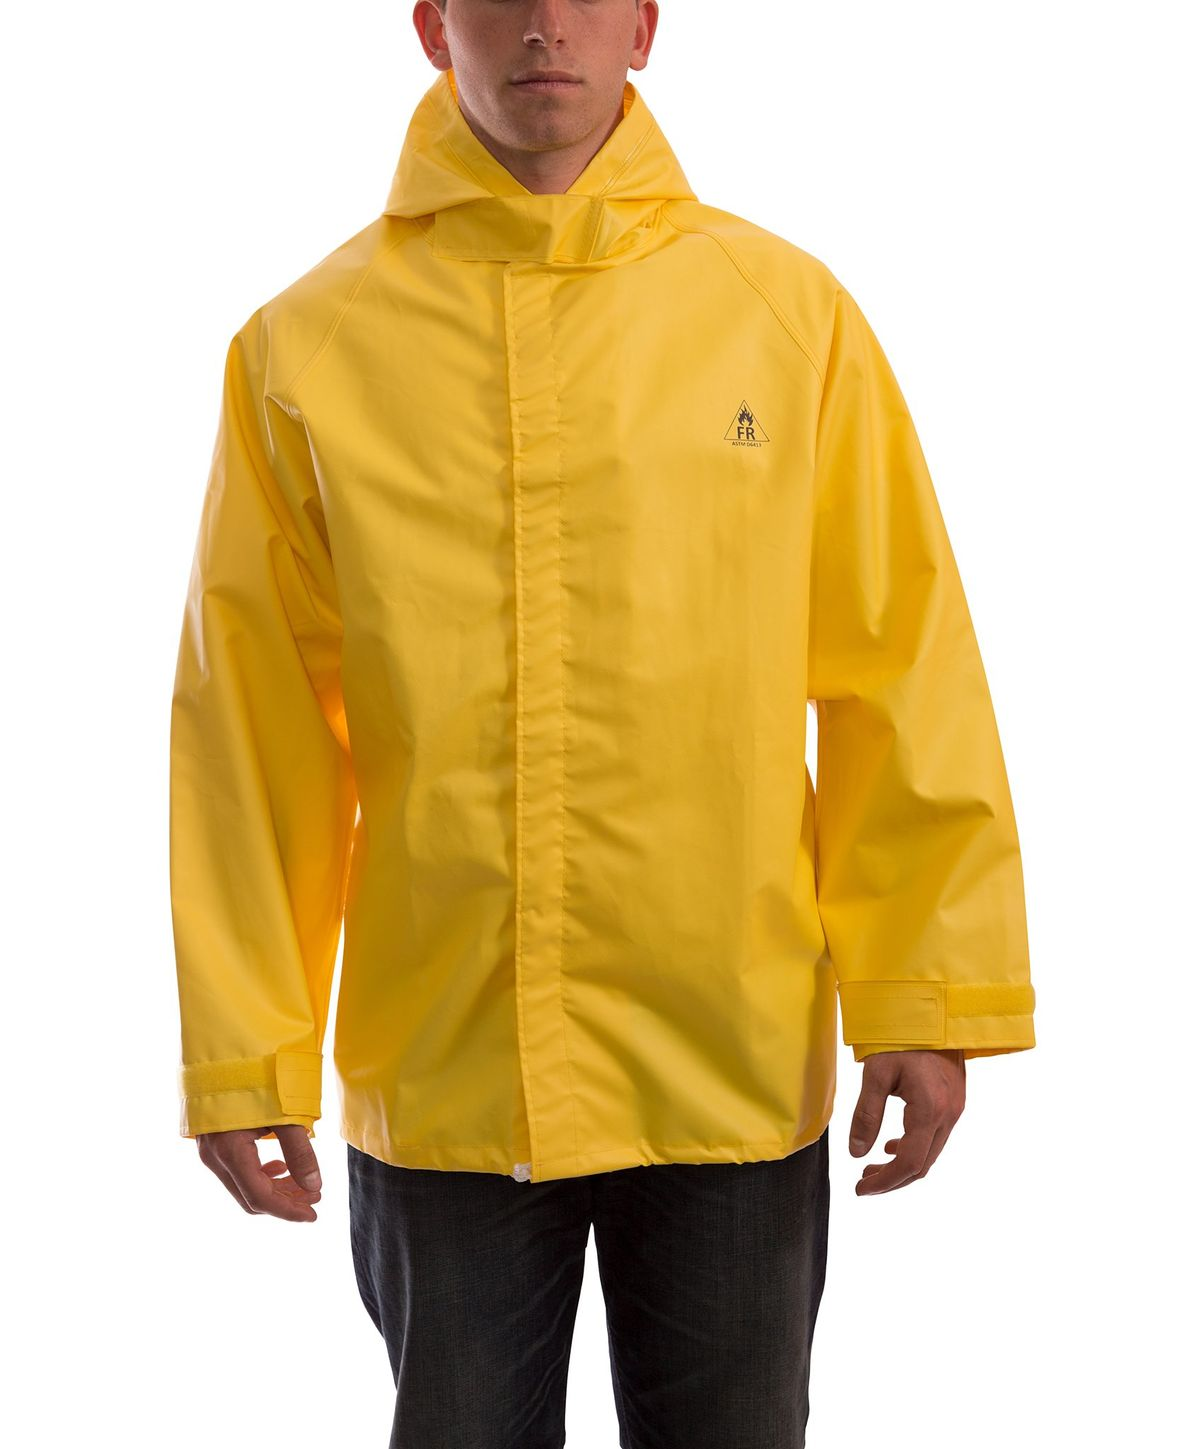 tingley-j56147-durablast-fire-resistant-jacket-pvc-coated-chemical-resistant-with-attached-hood-front.jpg